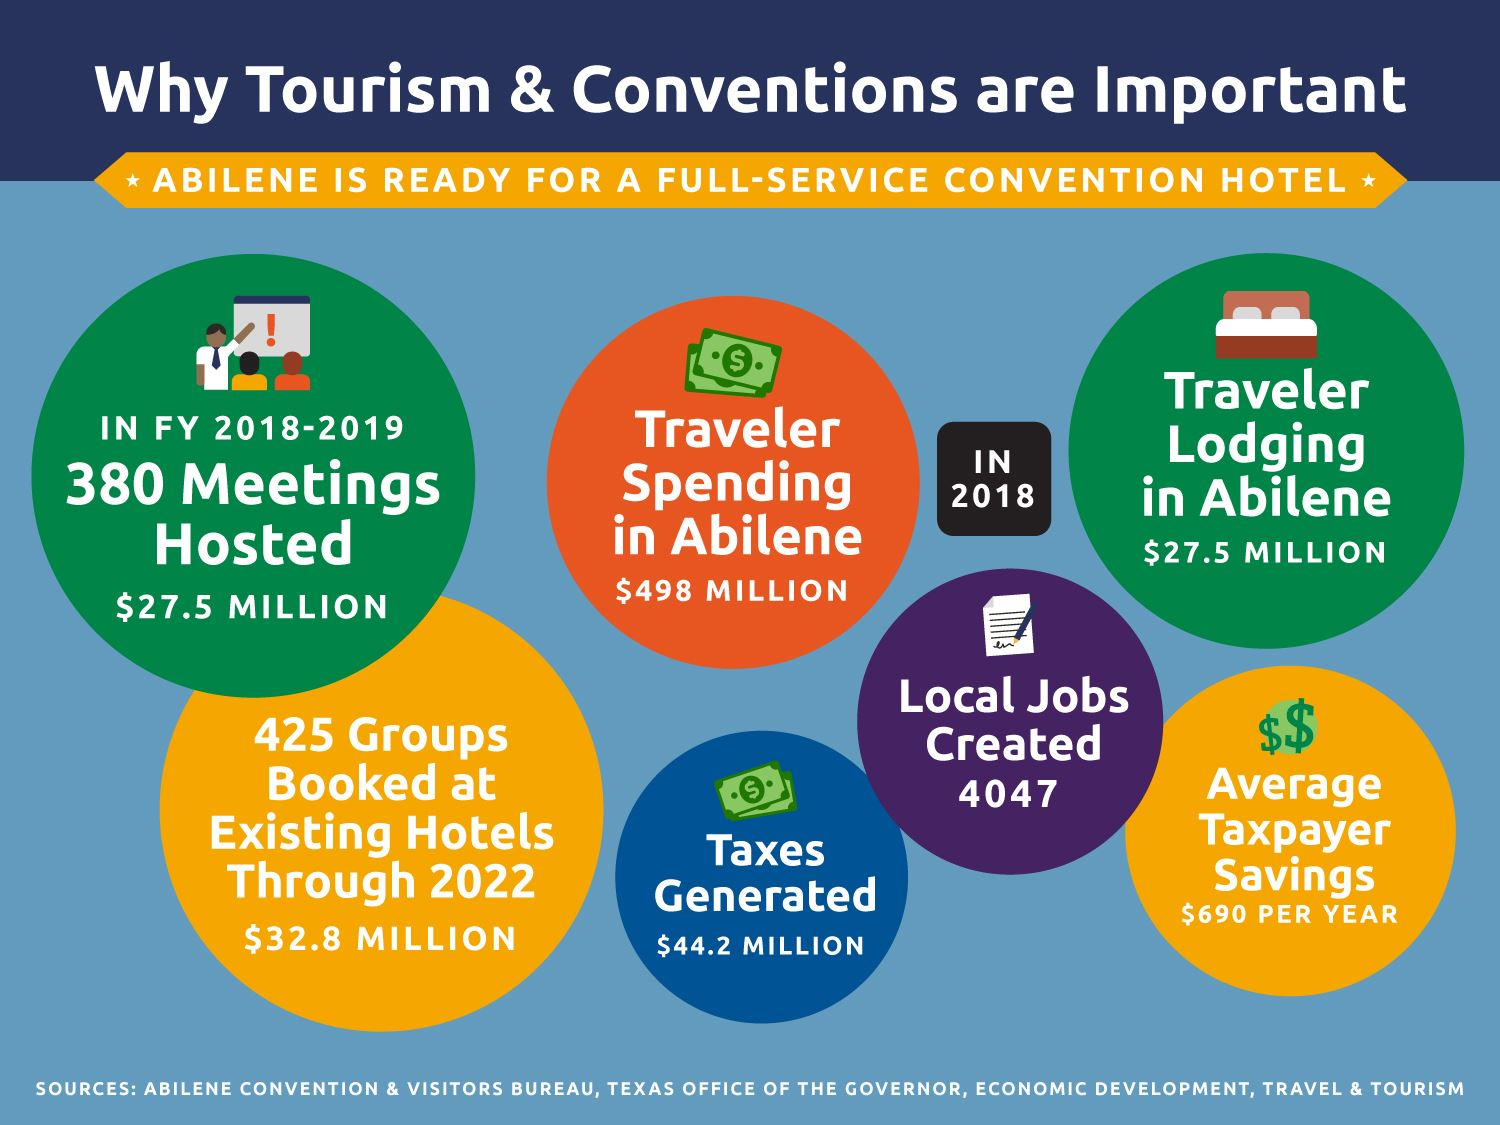 Why Tourism & Conventions are important